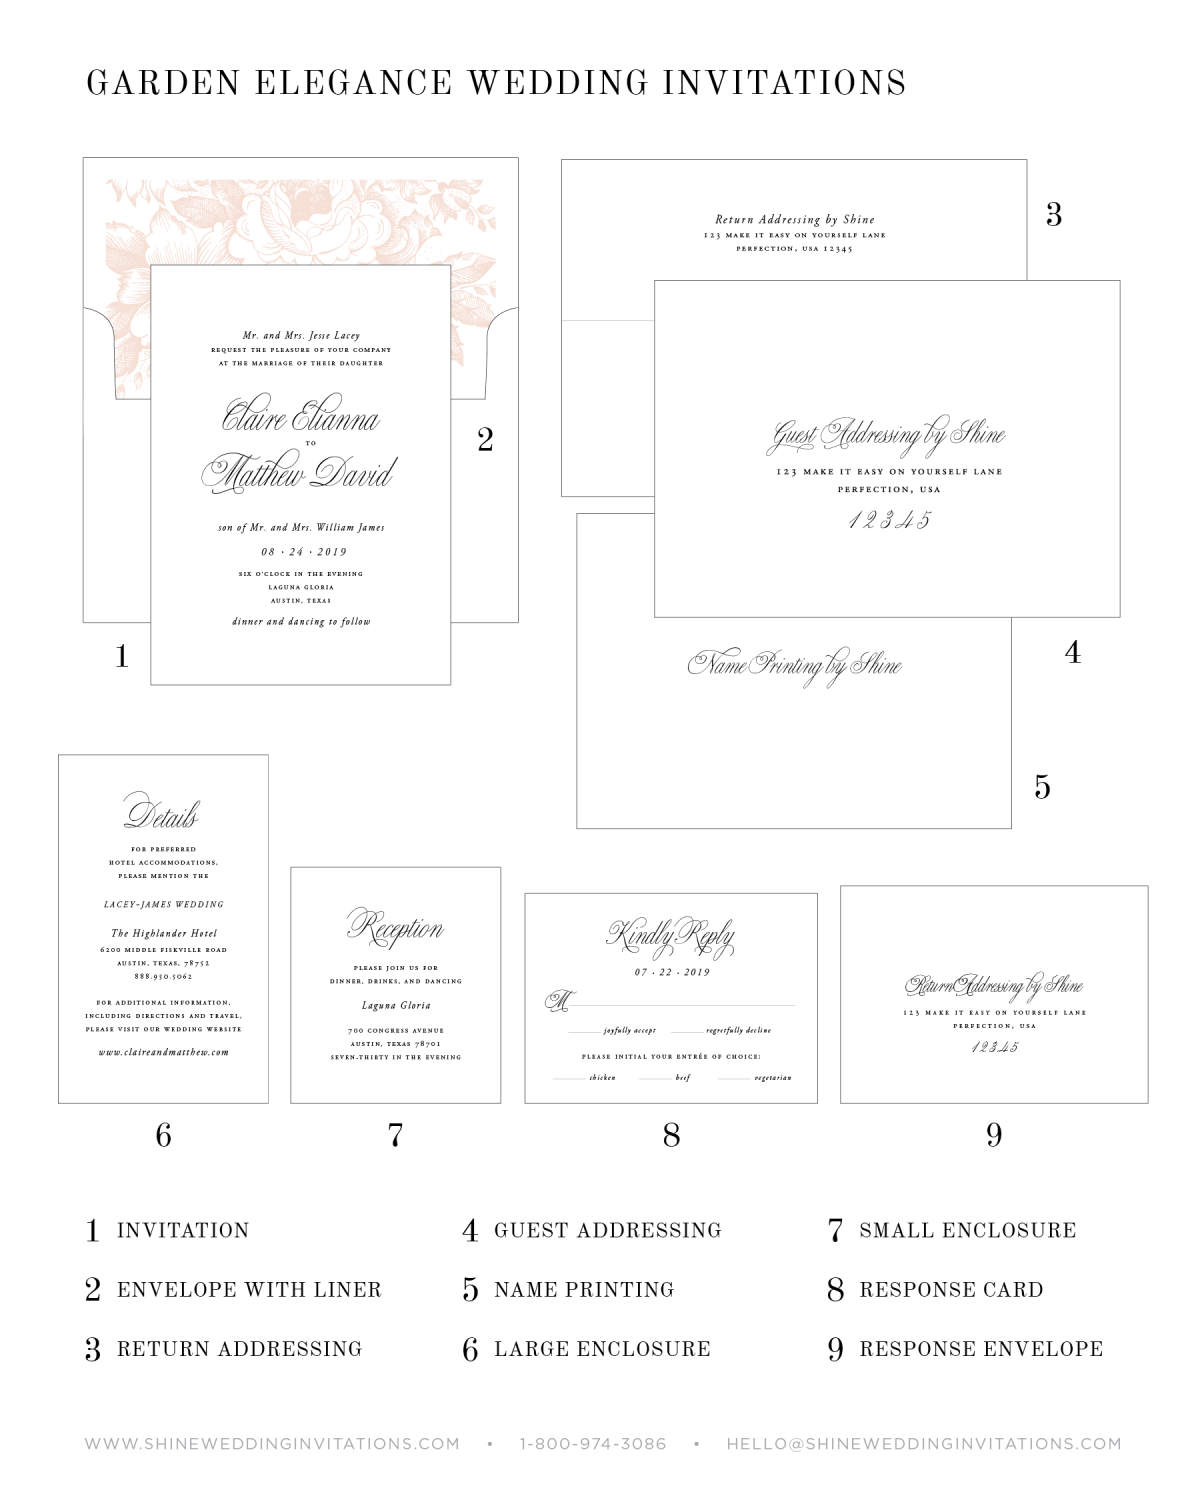 Wedding Invitation Components and Pieces